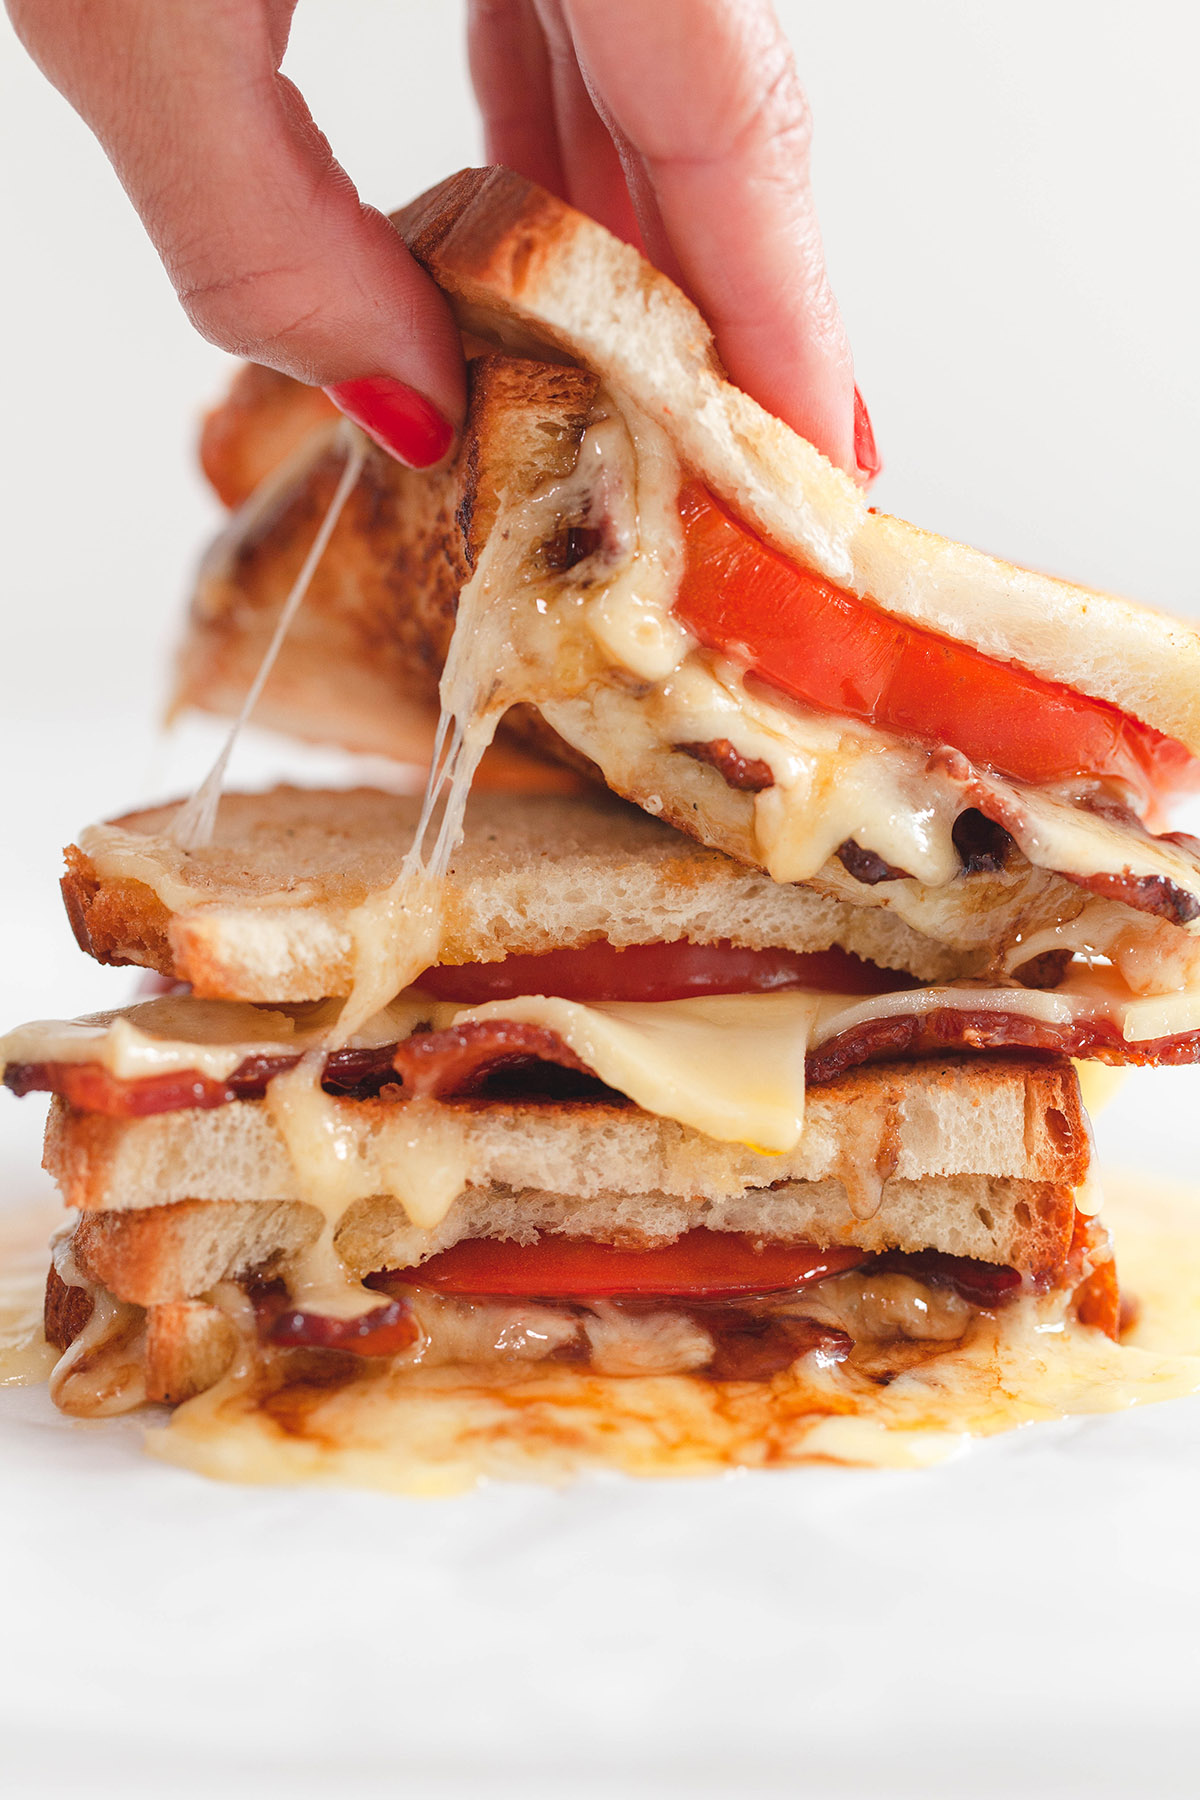 Balsamic Bacon and Tomato Grilled Cheese